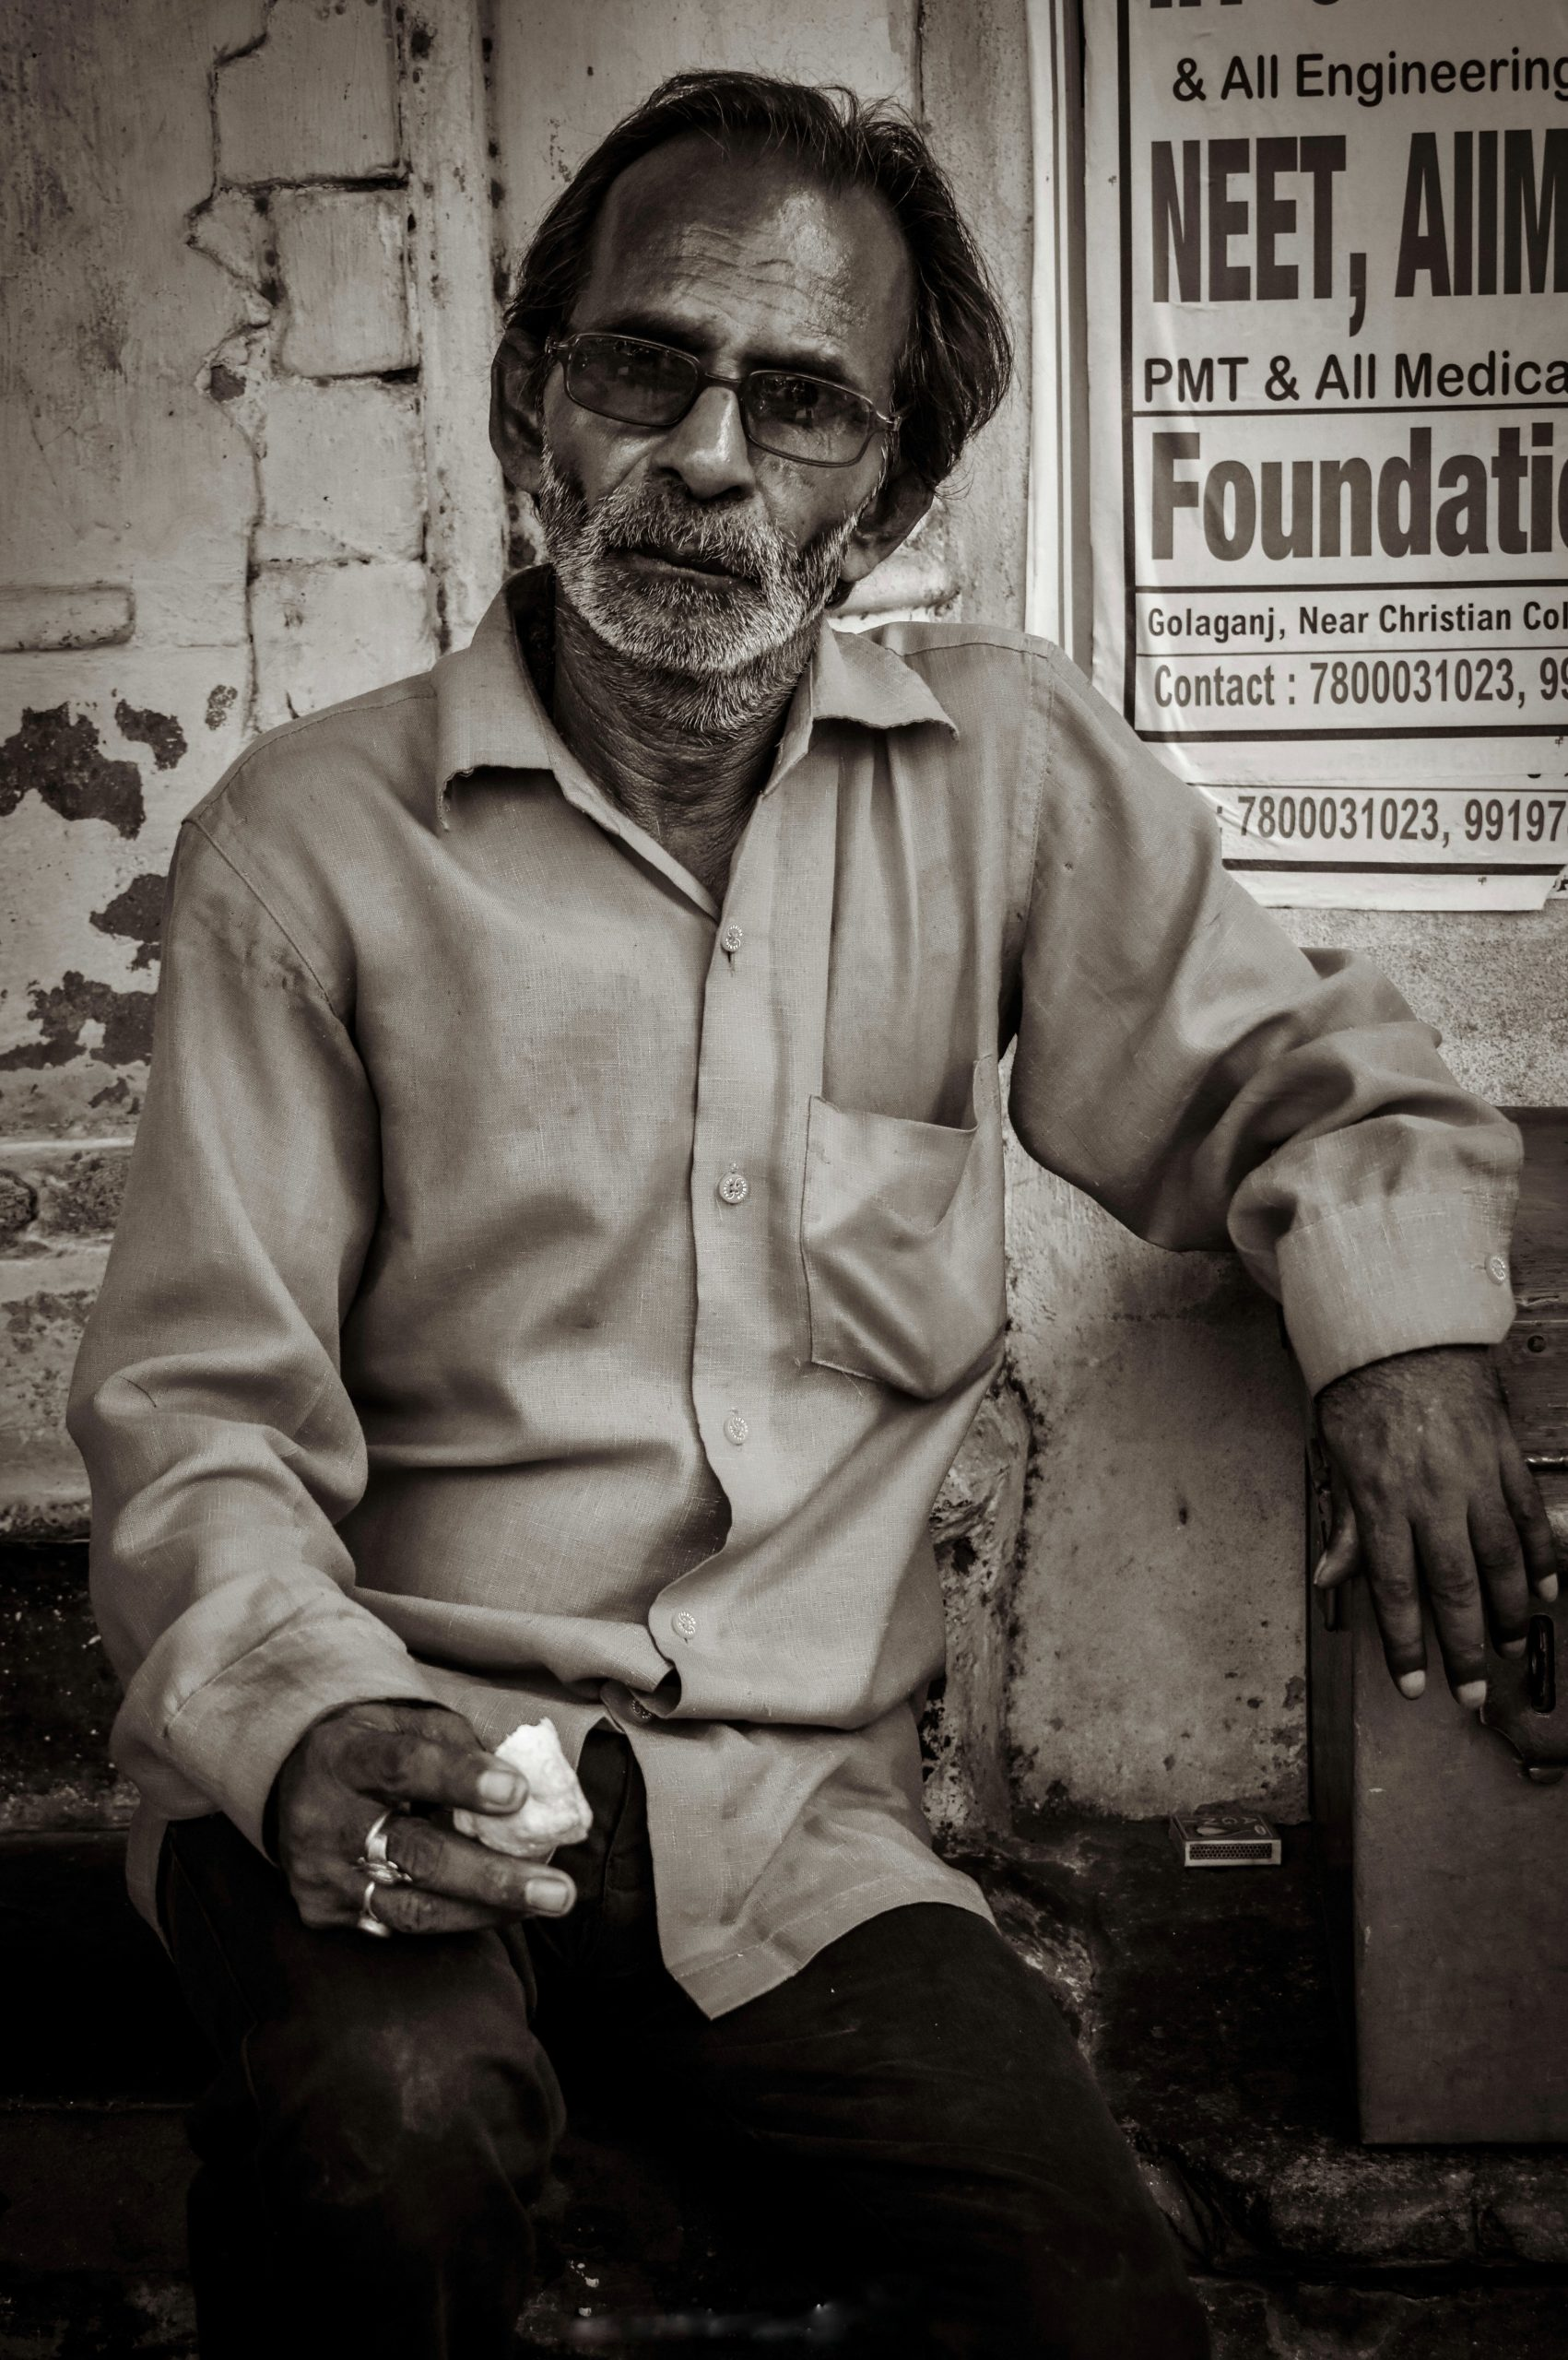 An old man sitting on a bench.